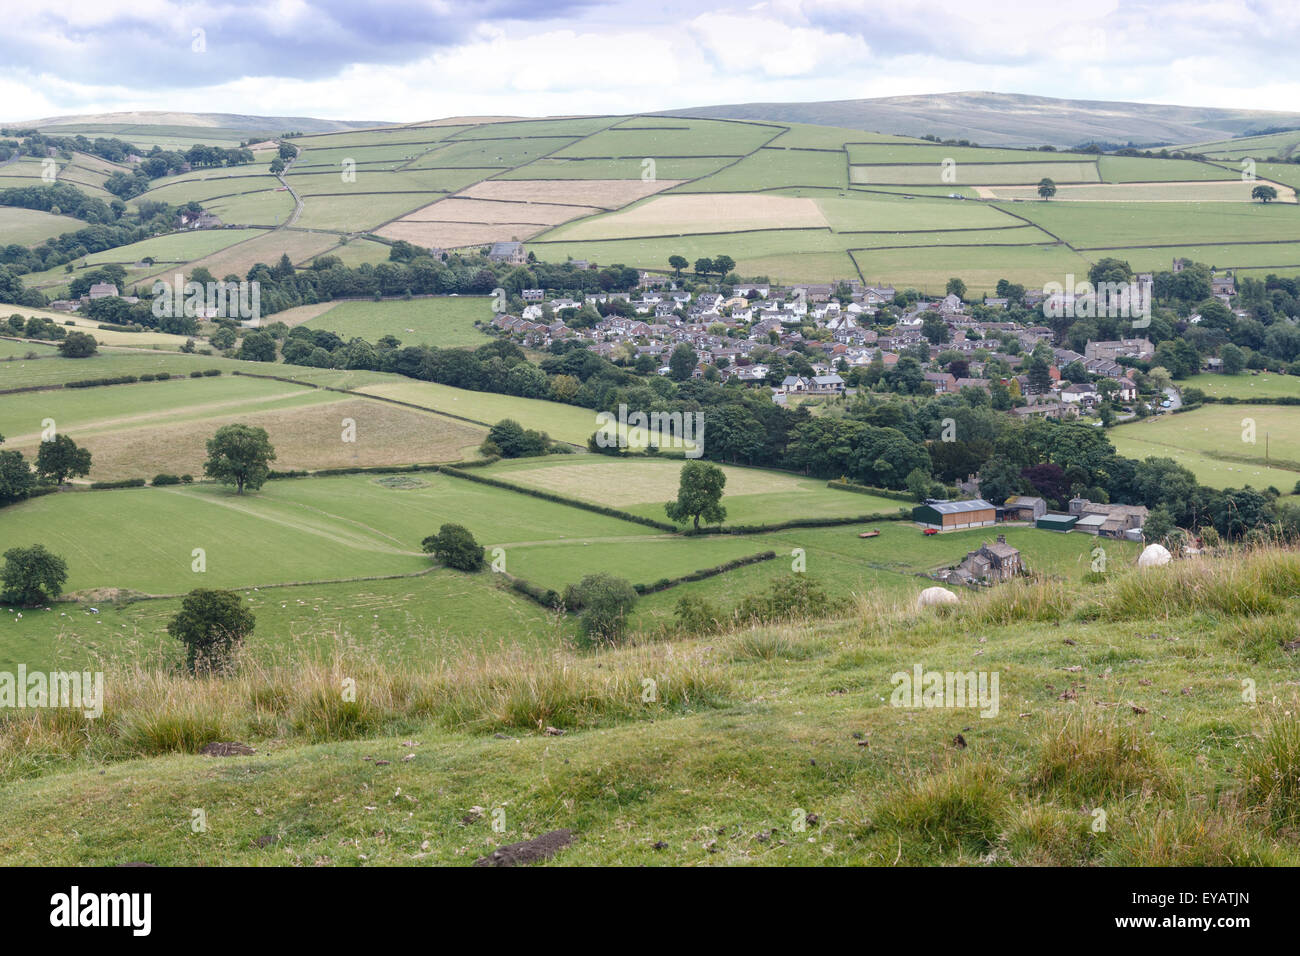 Shining Tor and the Peak district moors above the village of Rainow on the edge of the Cheshire Plain - Stock Image